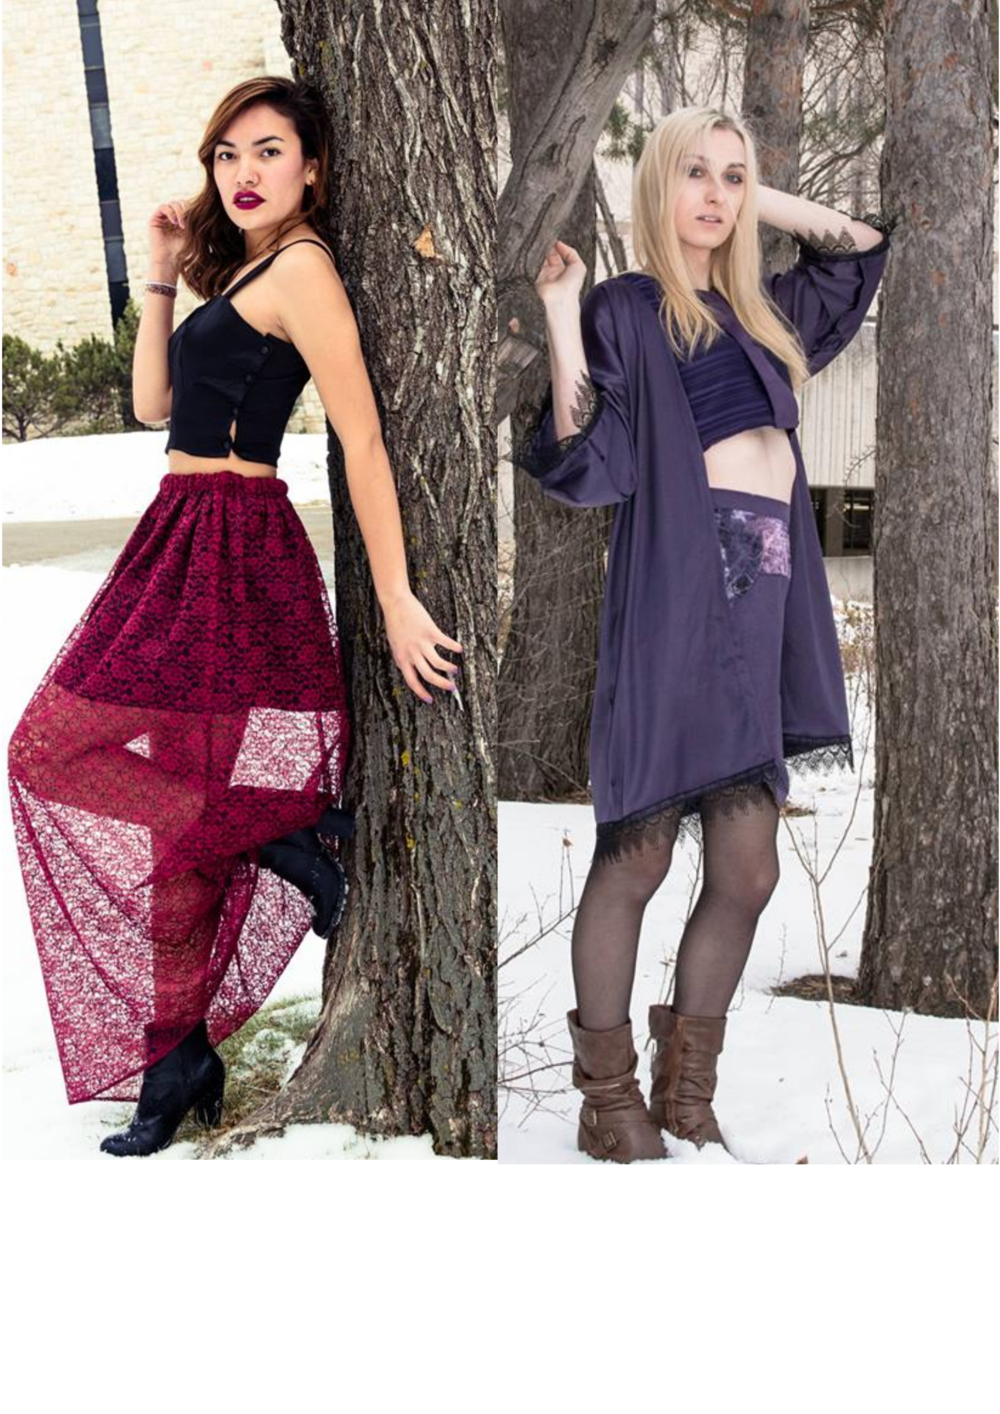 Model left: Kiara Rabbitskin  Model right: Melissa Cheetham  Photographer: Zohaib Parvez